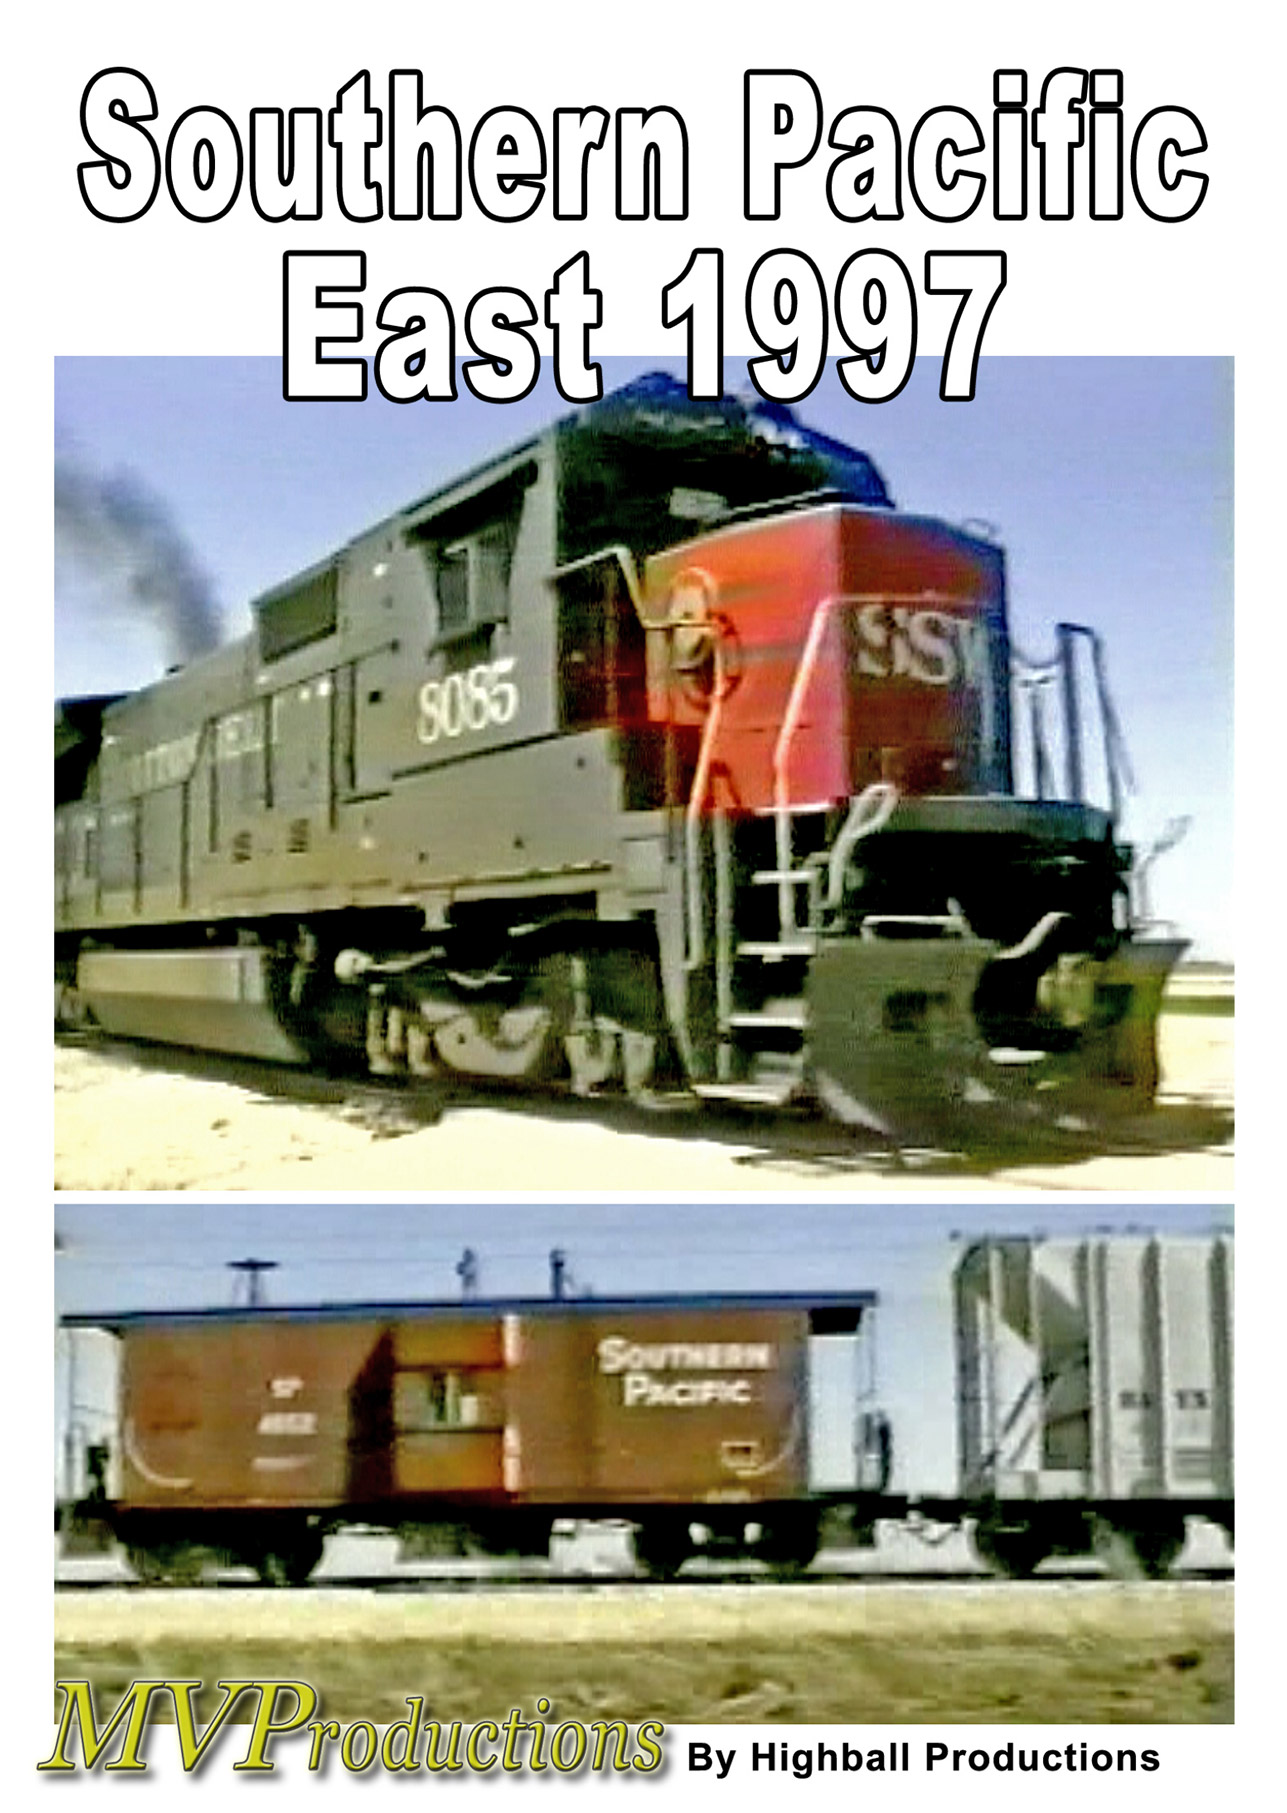 Southern Pacific  East 1997 DVD Midwest Video Productions MVSPE 601577880066